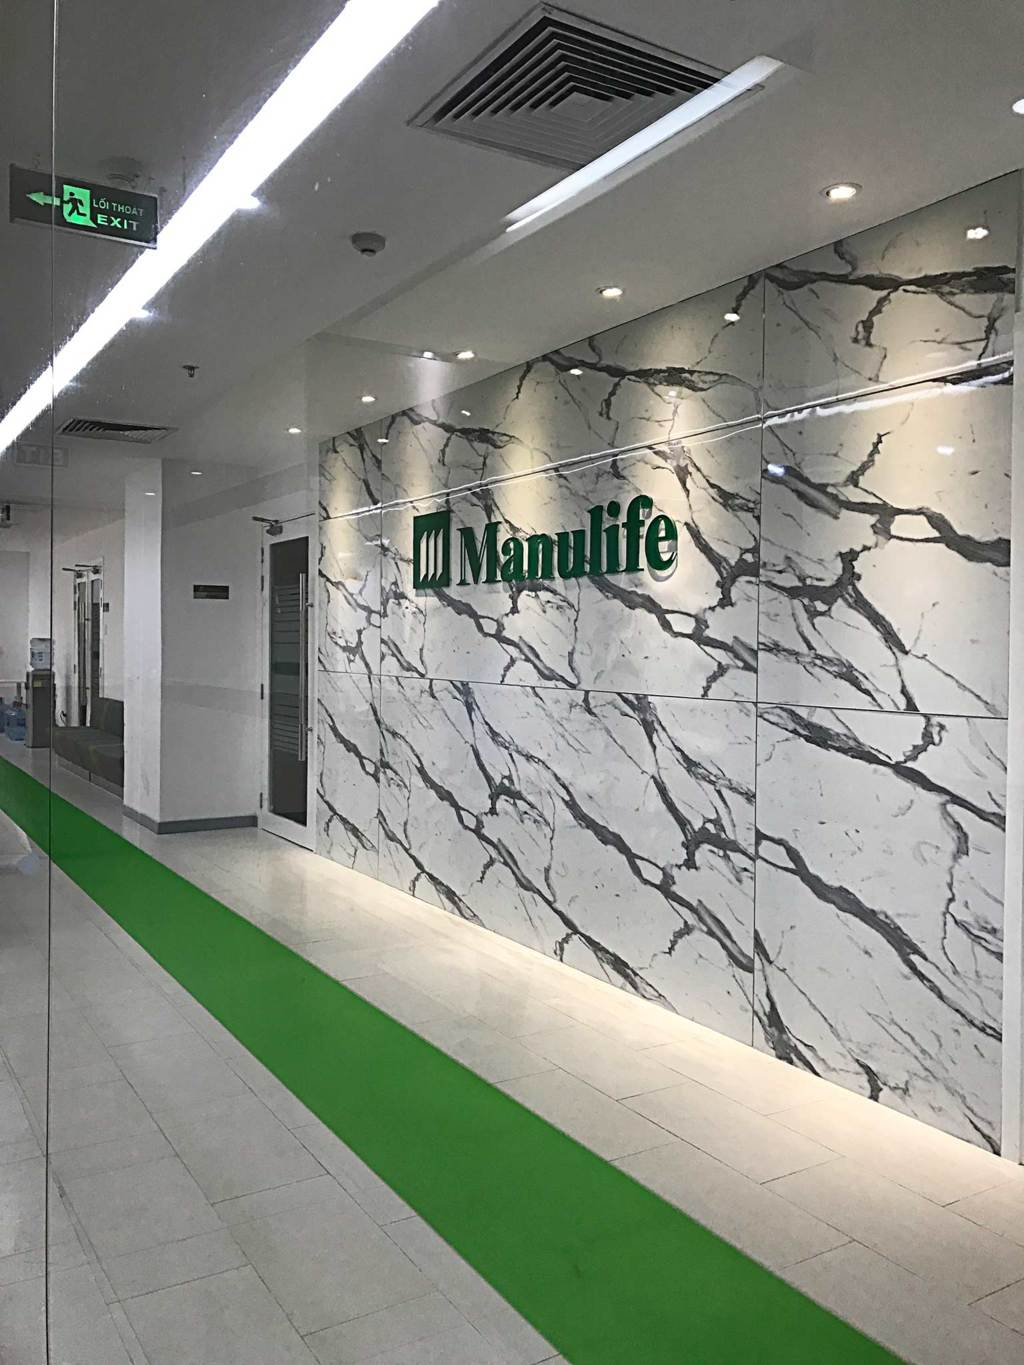 Solid_Manulife_2